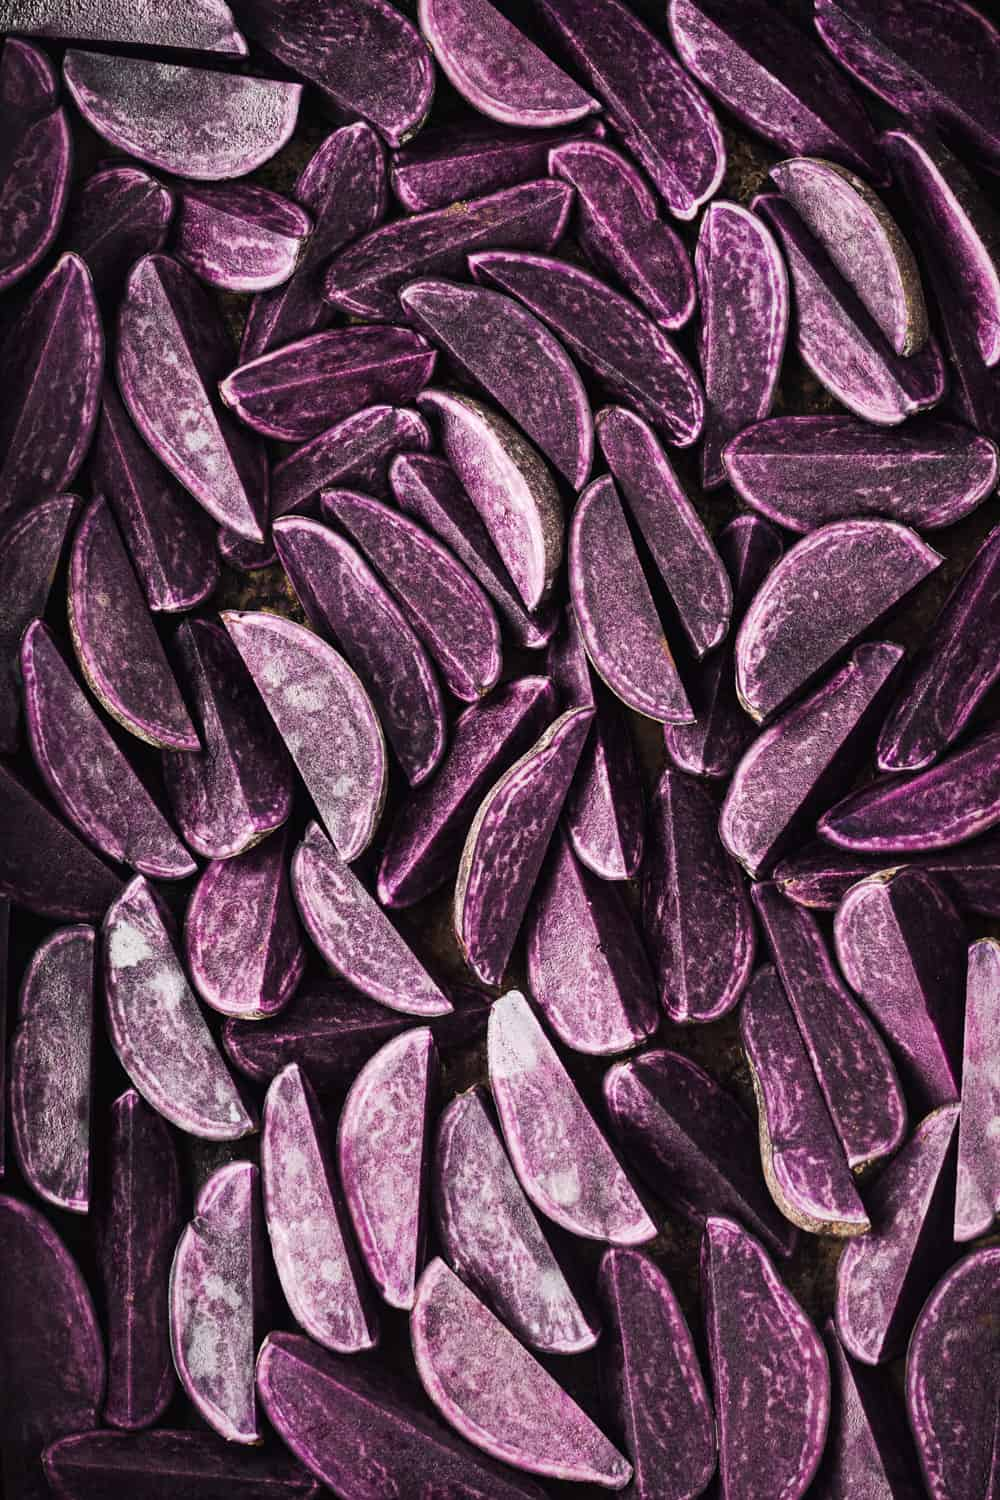 Raw purple potatoes cut into wedges on a baking sheet; overhead shot.